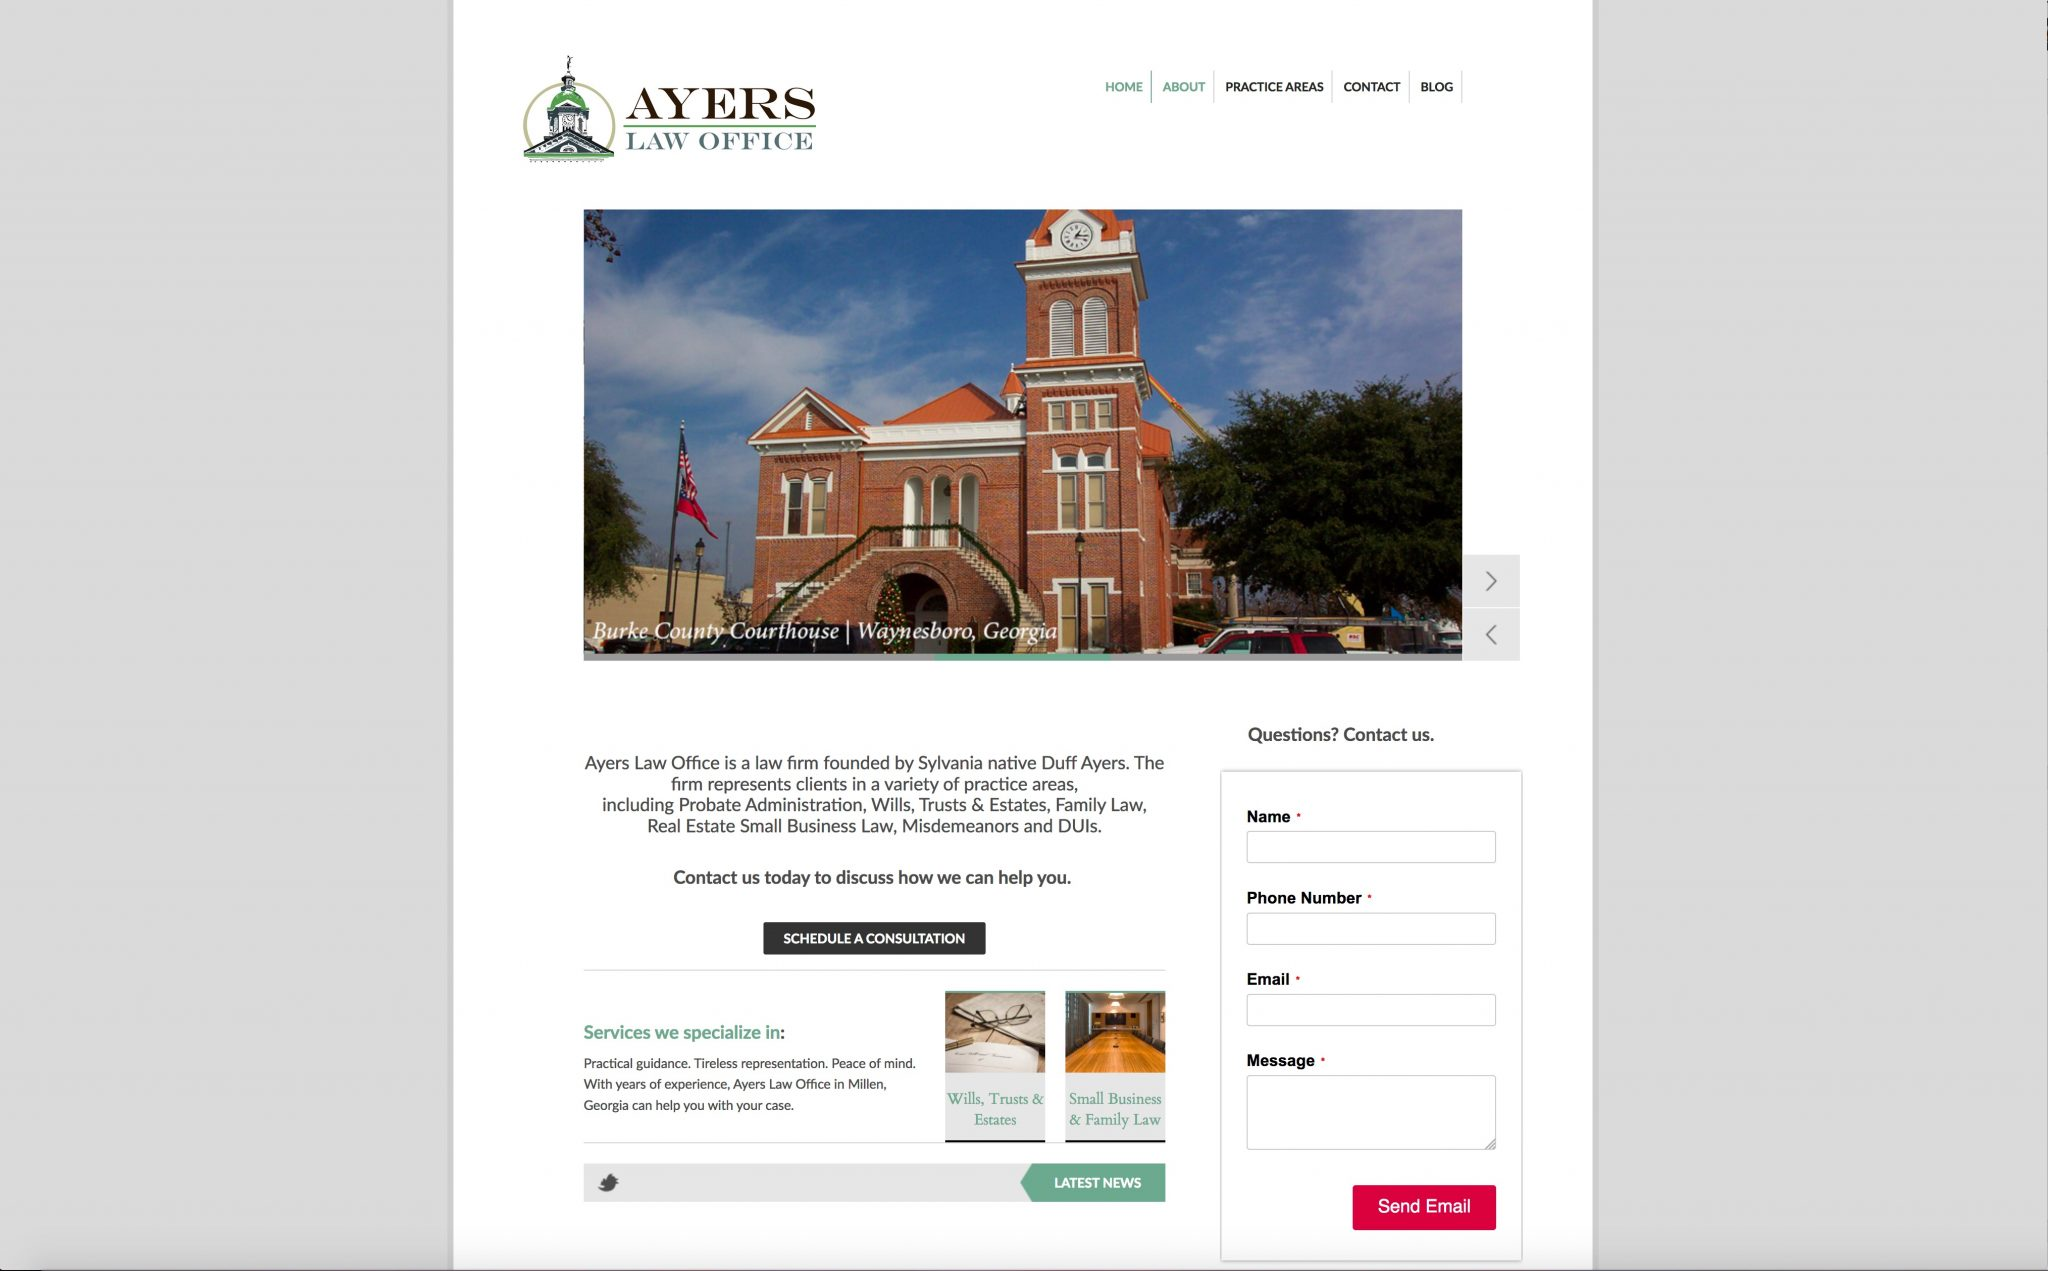 Ayers Law Firm